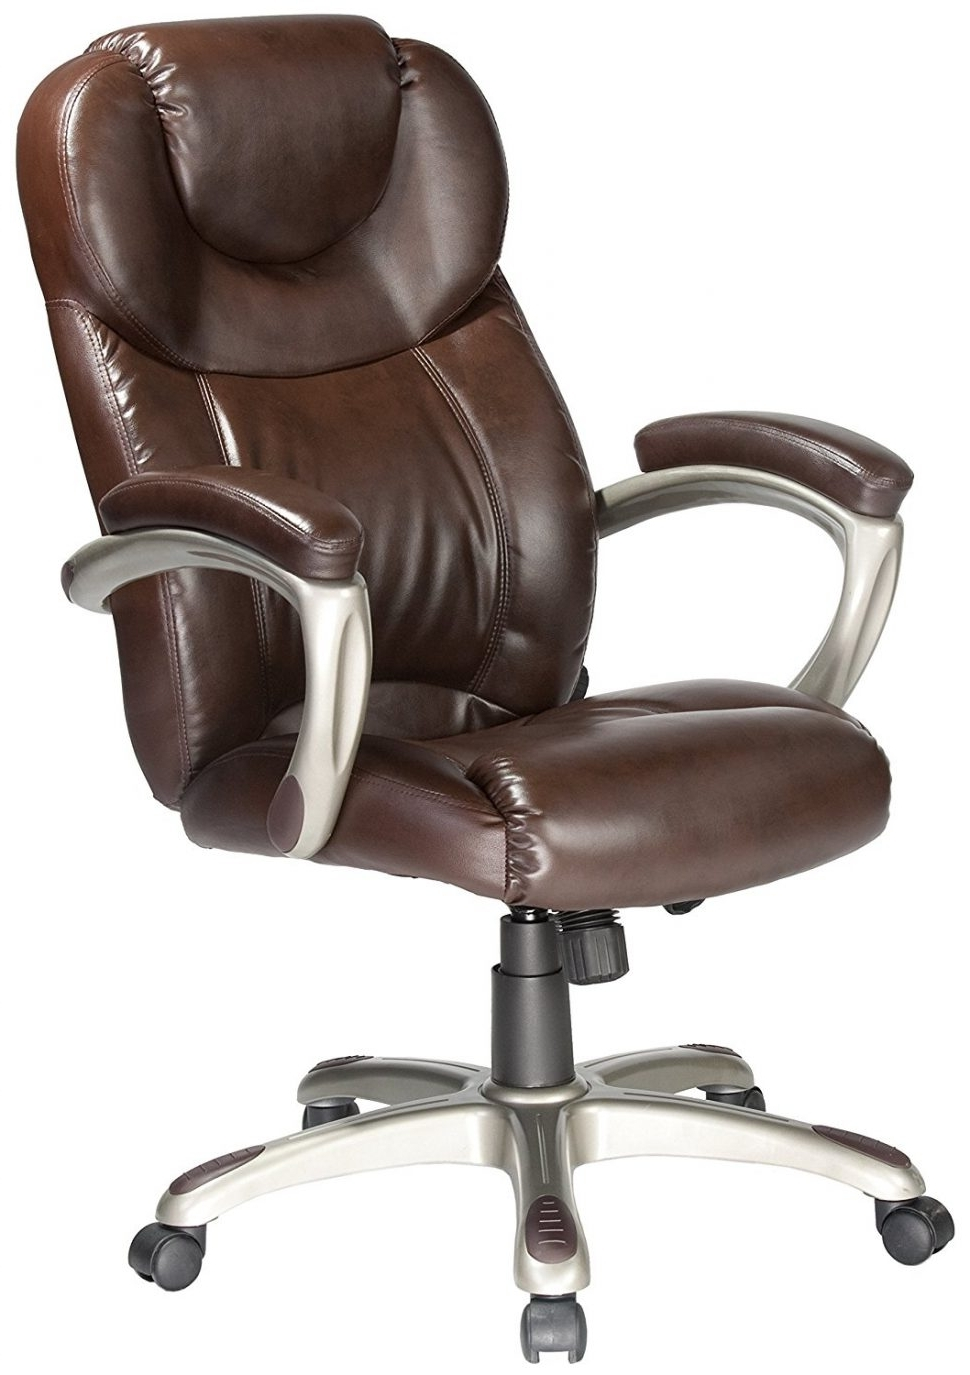 2019 Tan Brown Mid Back Executive Office Chairs Throughout Chair : Brown Leather Office Chair Oversized Chair And A Half (View 5 of 20)